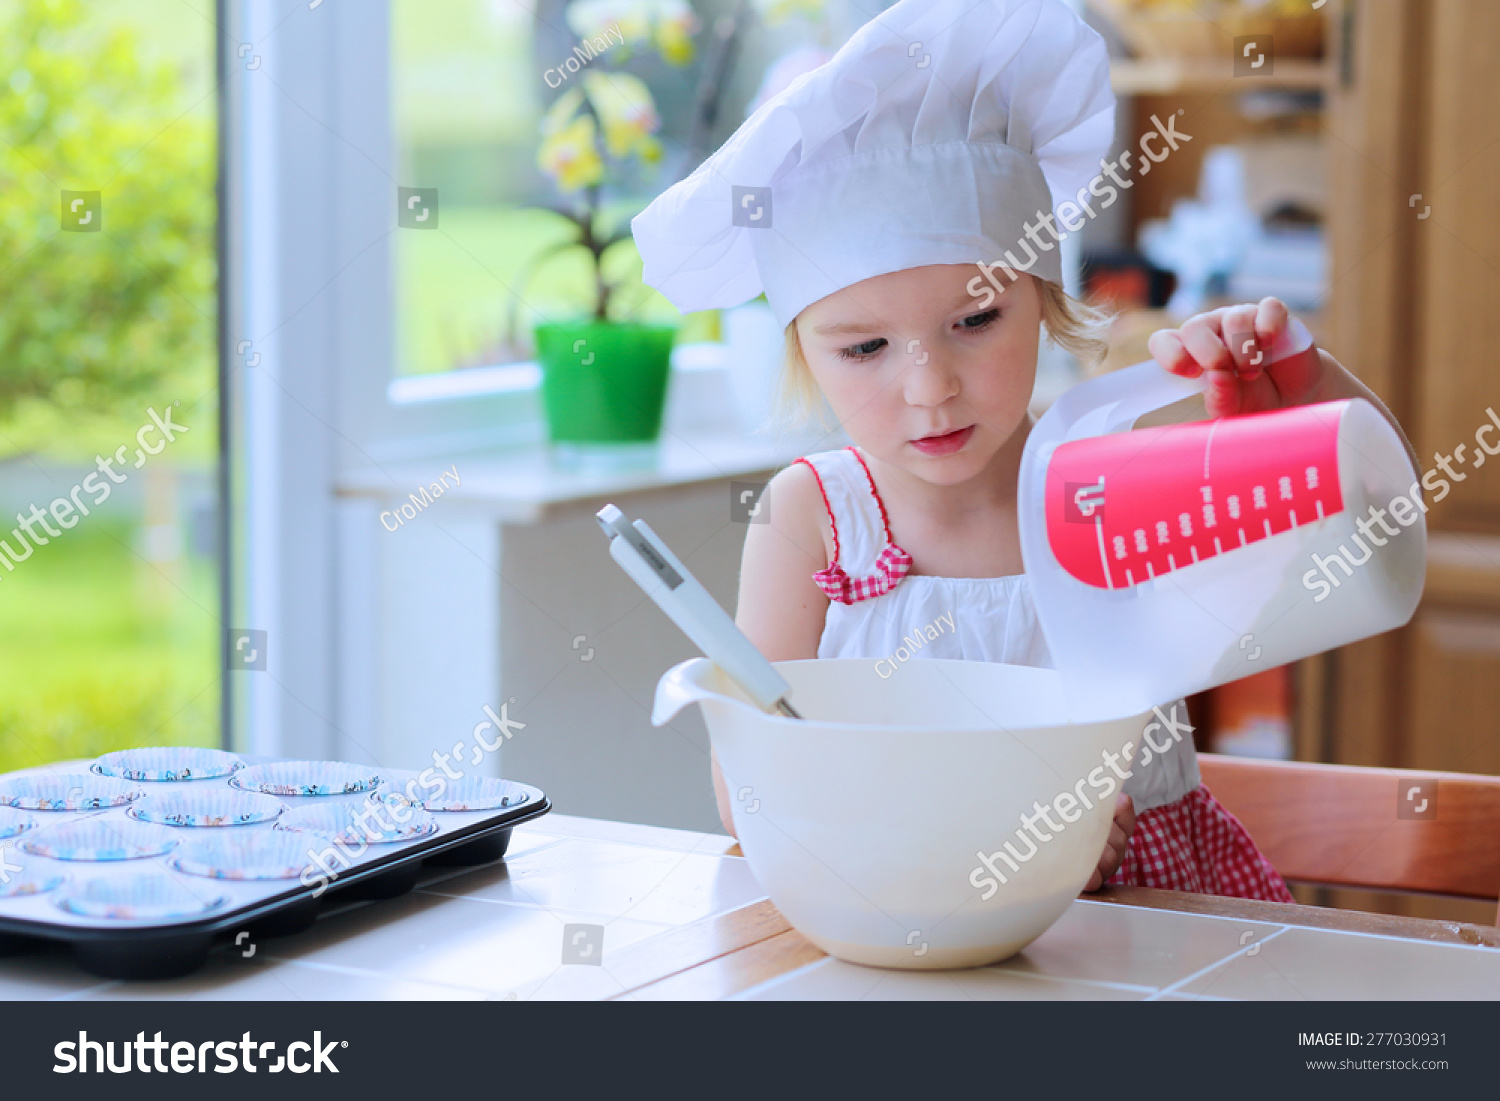 Baking With Children Little Happy Kid Adorable Toddler